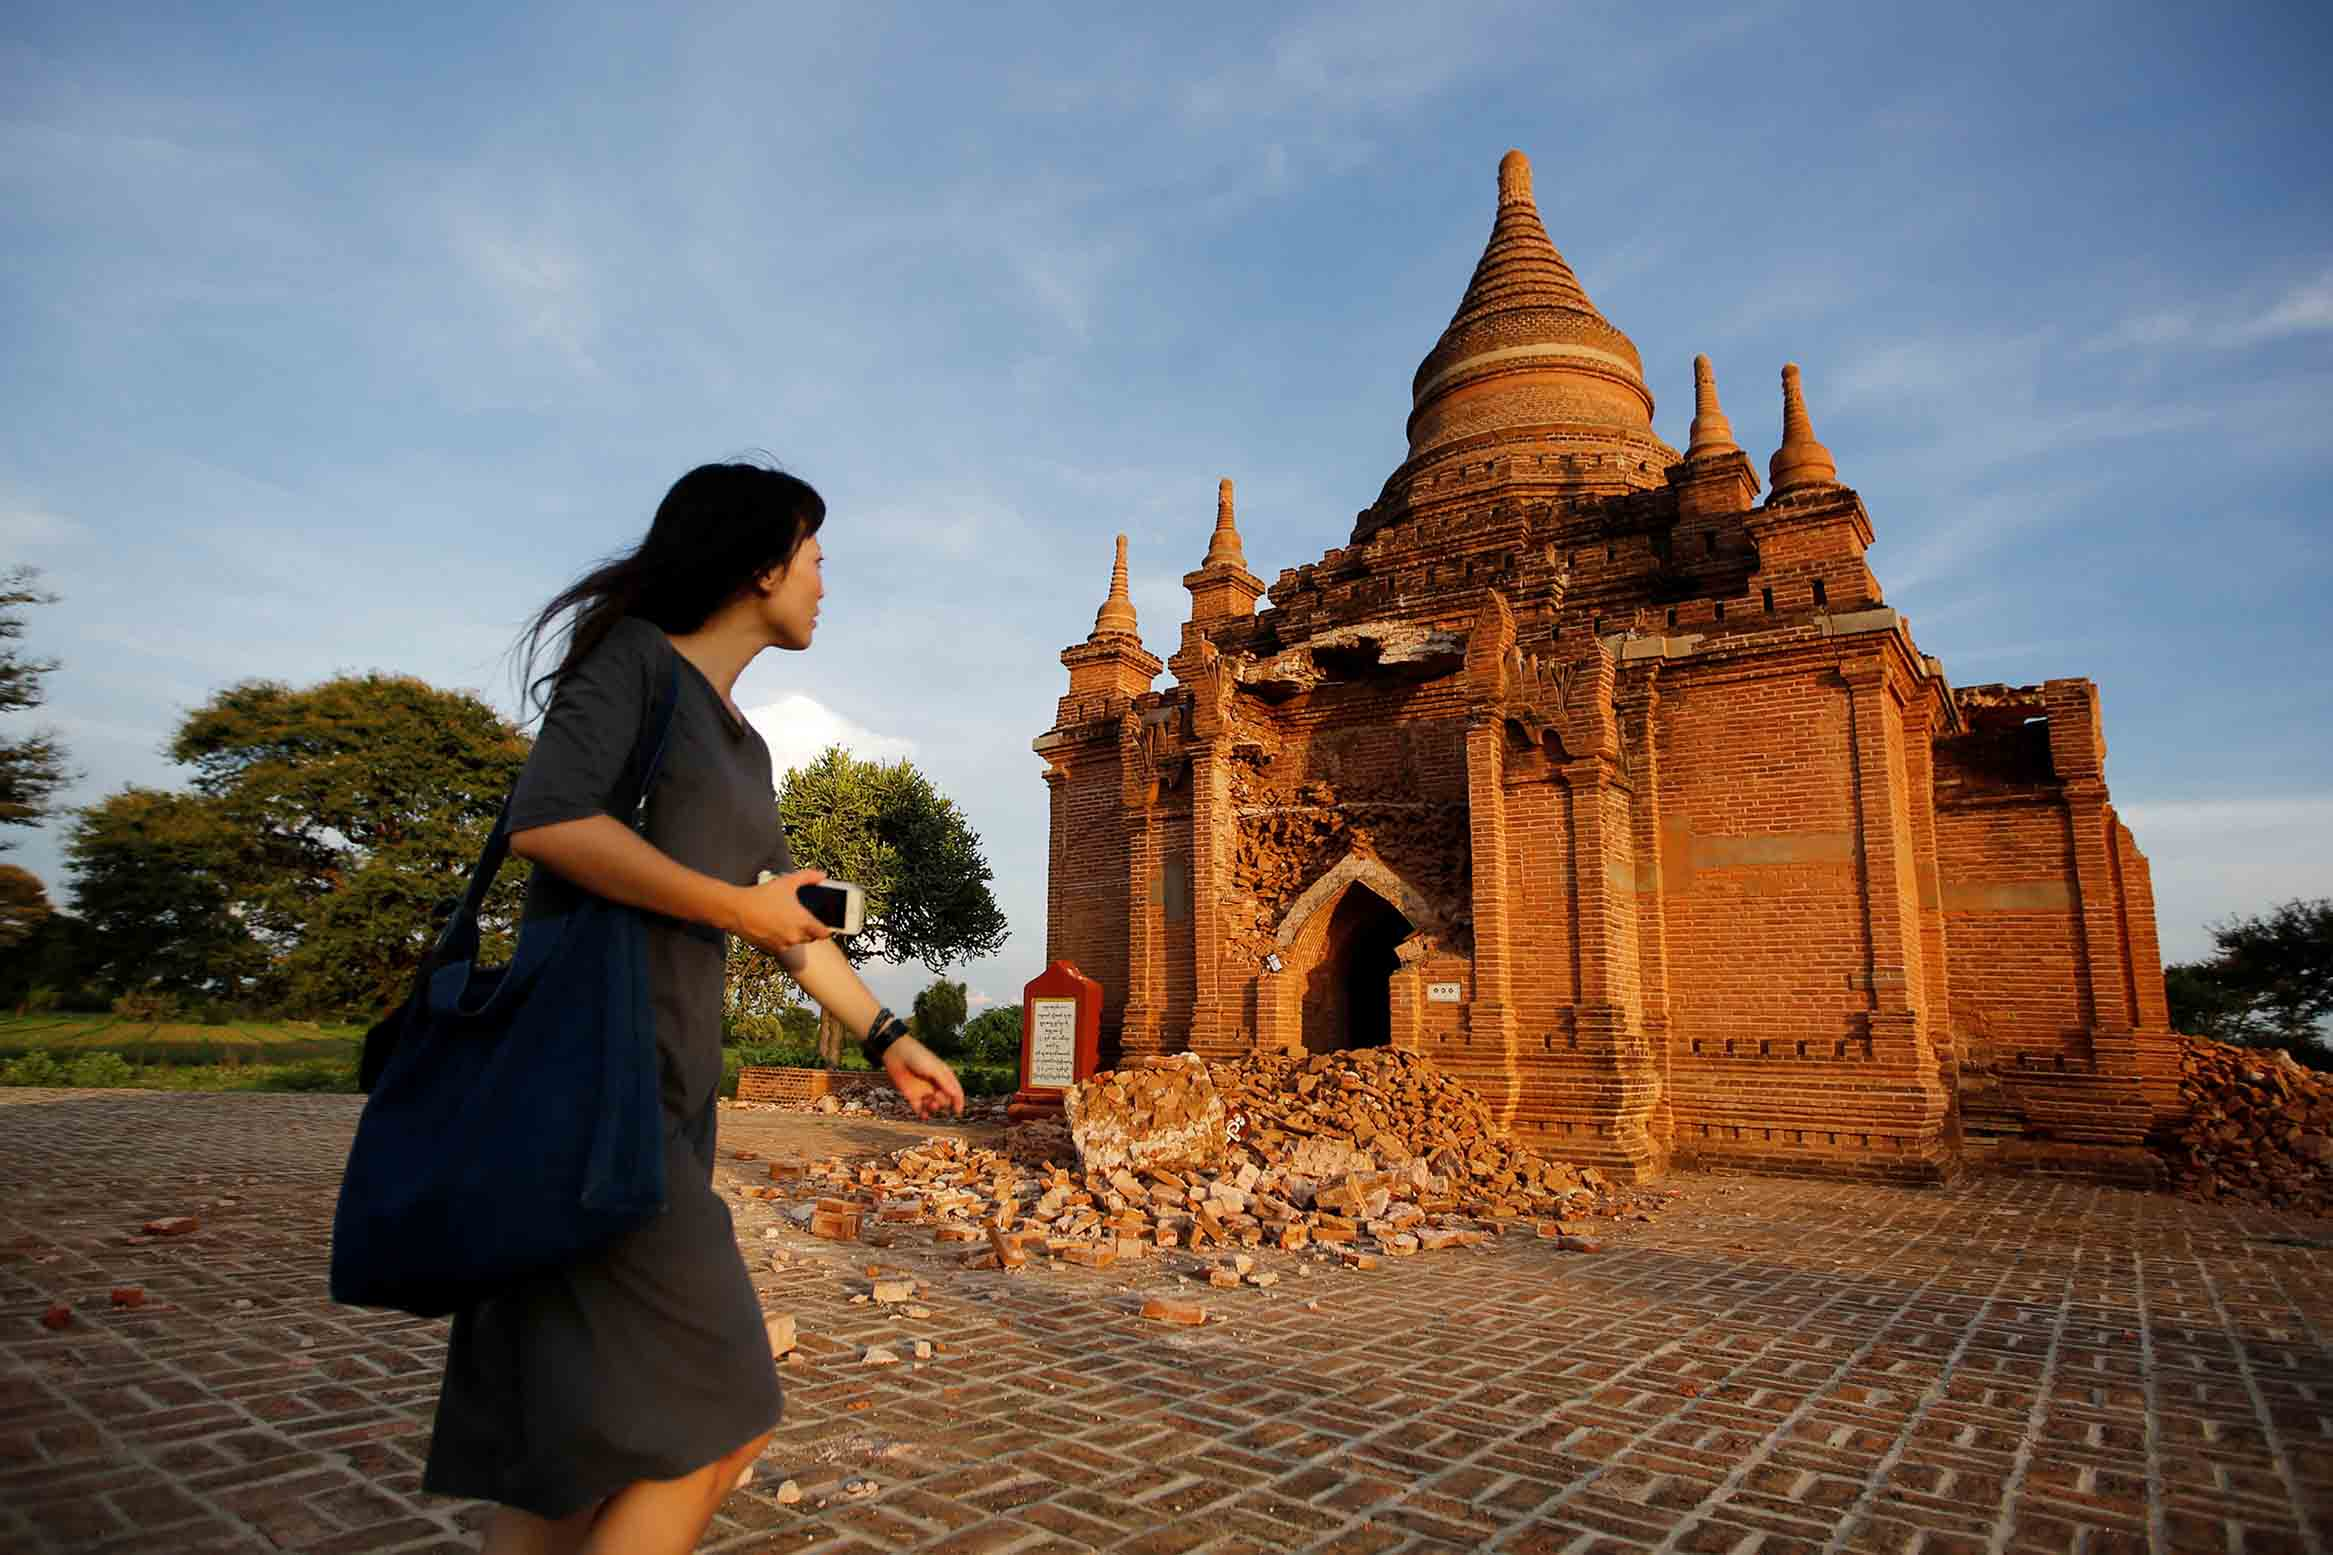 Burma is completing the repair of hundreds of pagodas that were damaged by the Bagan earthquake in 2016